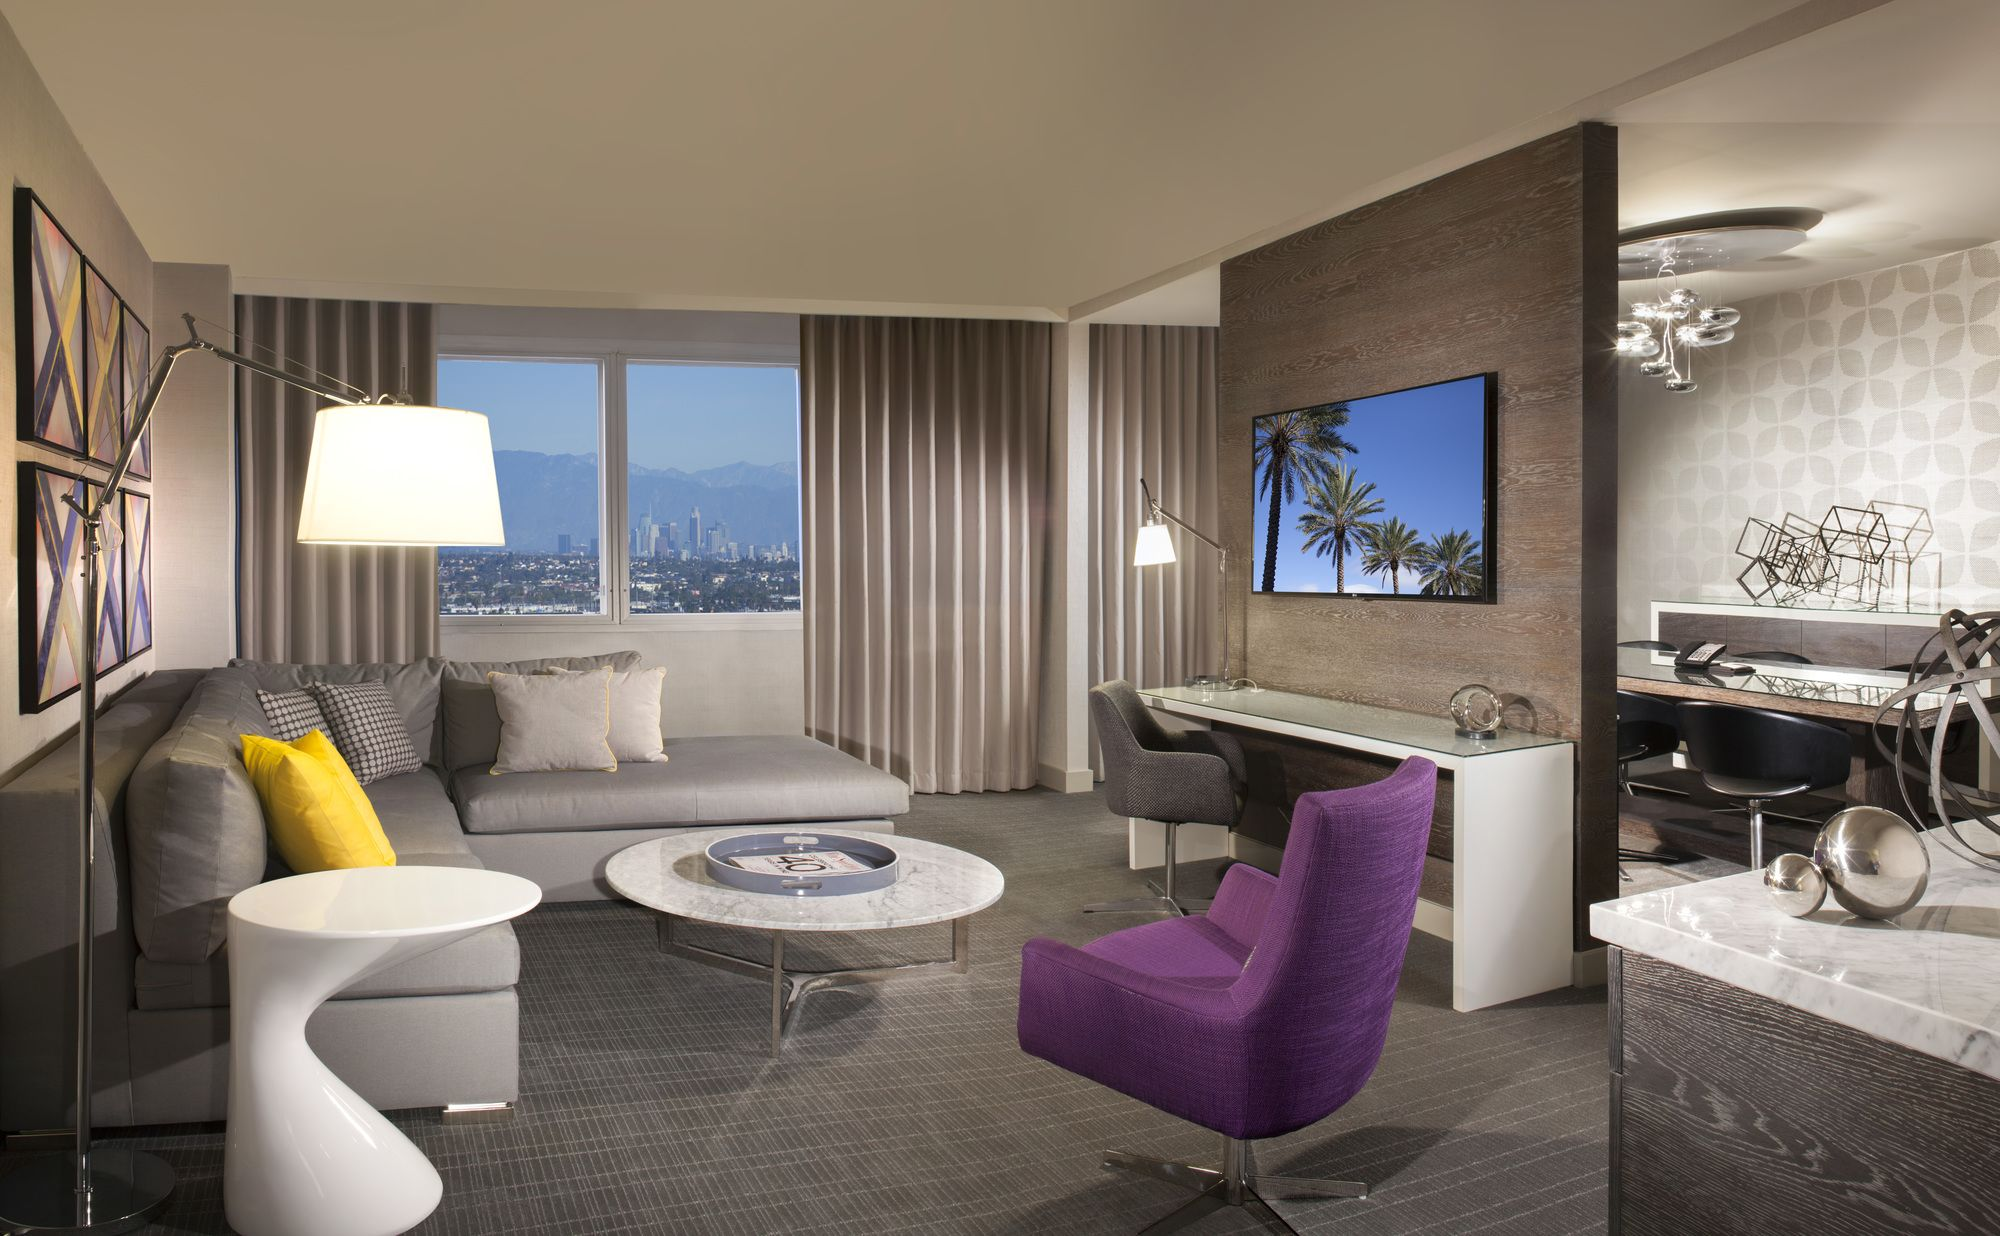 Los Angeles Hotel Coupons for Los Angeles California